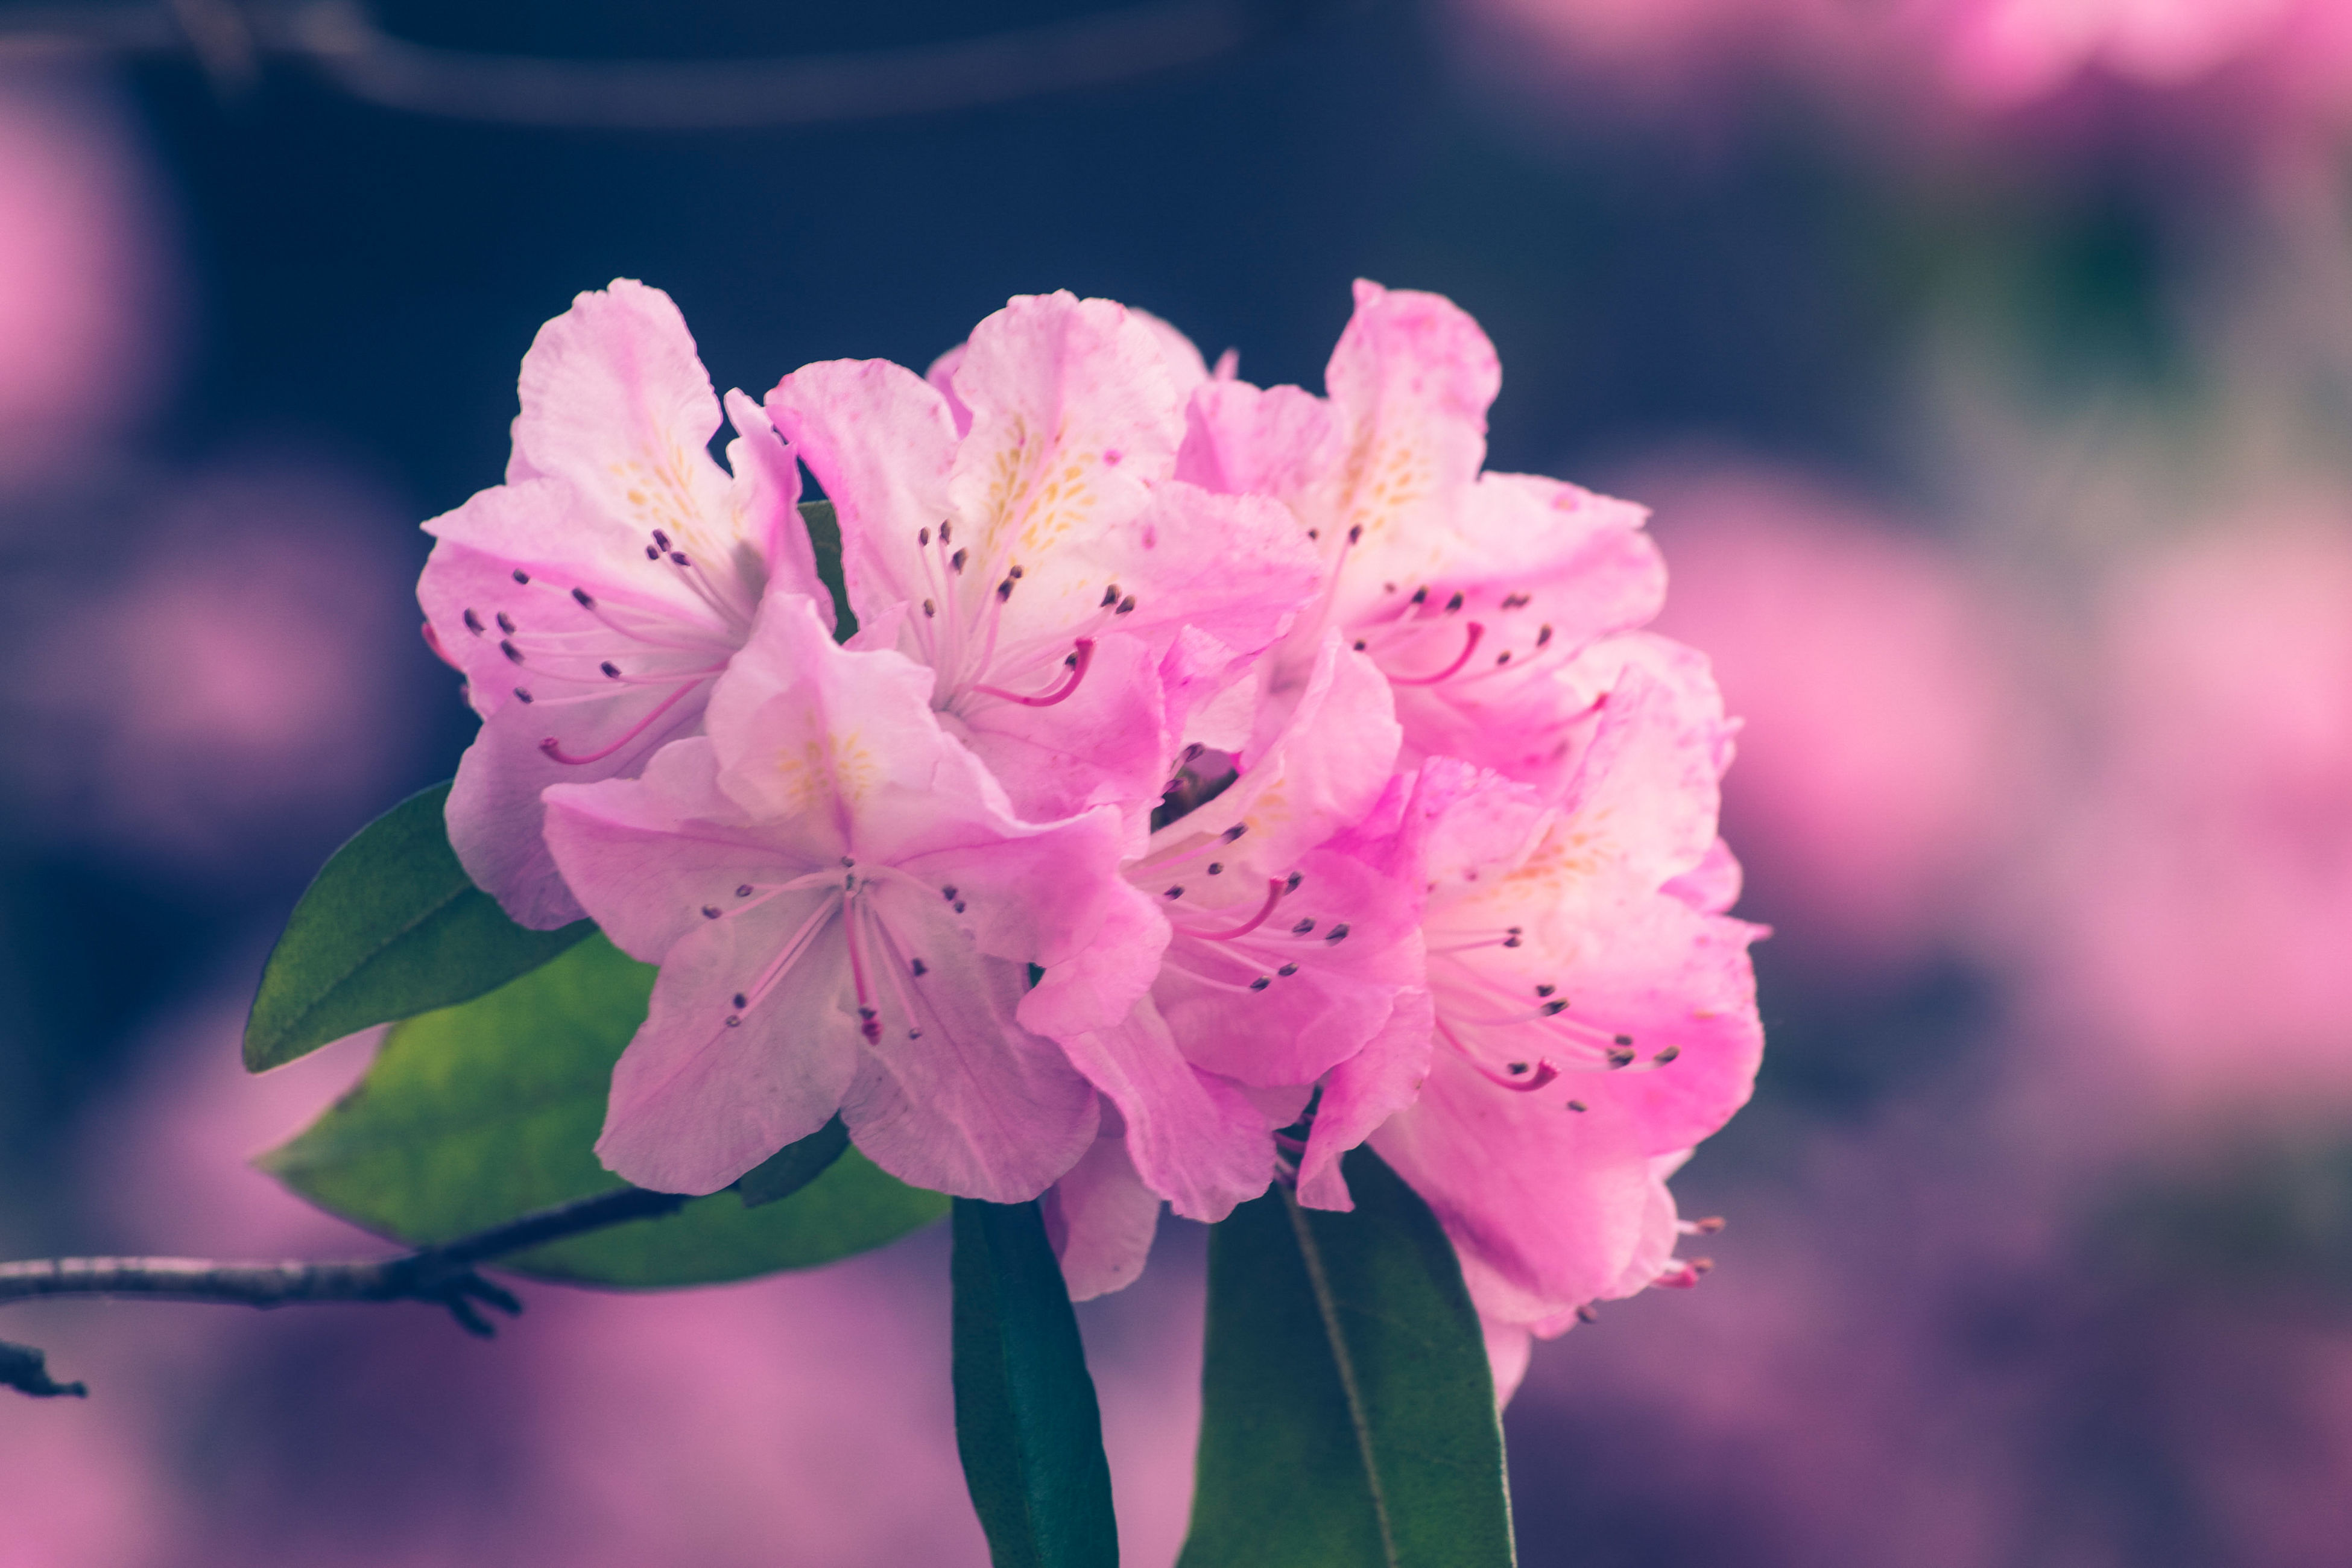 flower, fragility, beauty in nature, growth, pink color, petal, nature, freshness, flower head, close-up, focus on foreground, blossom, no people, outdoors, stamen, springtime, day, plant, blooming, animal themes